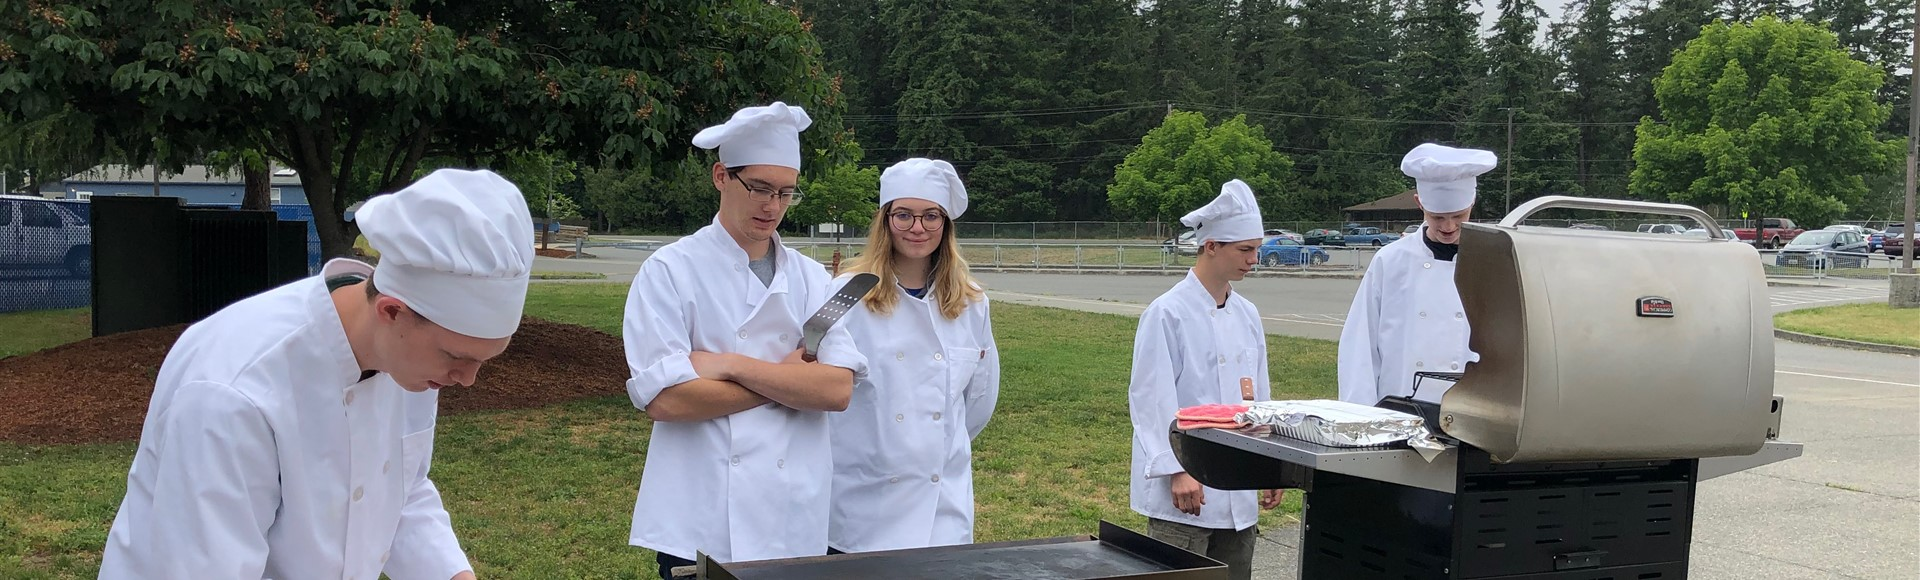 CHS Student Barbeque May 31, 2019